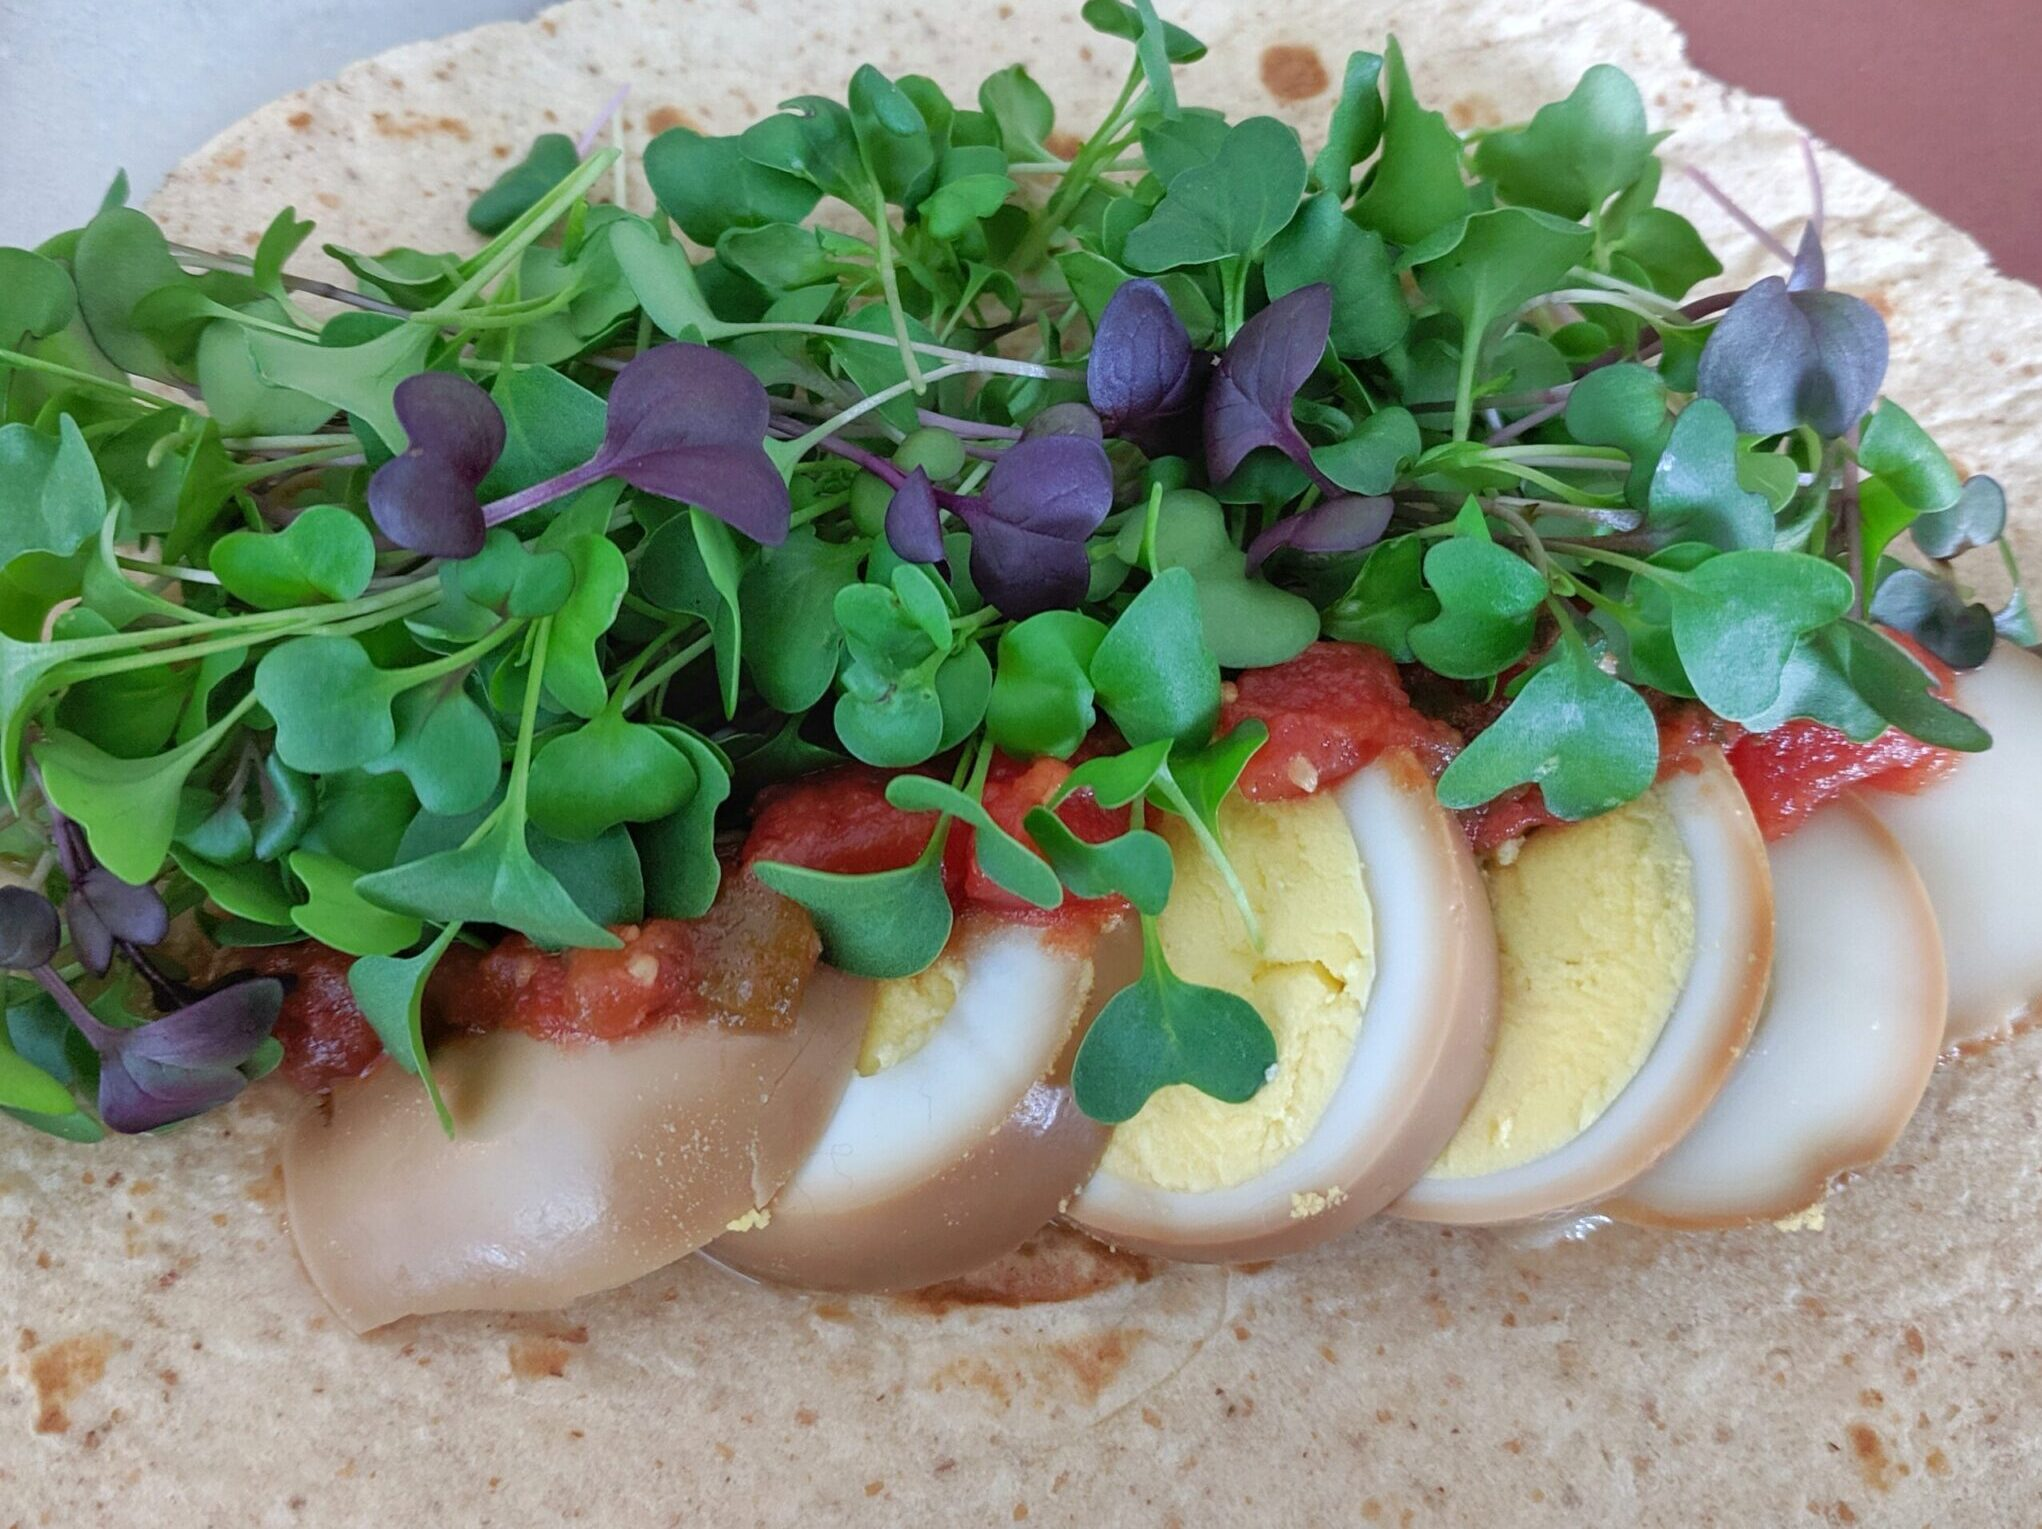 boiled egg and microgreens on a tortilla